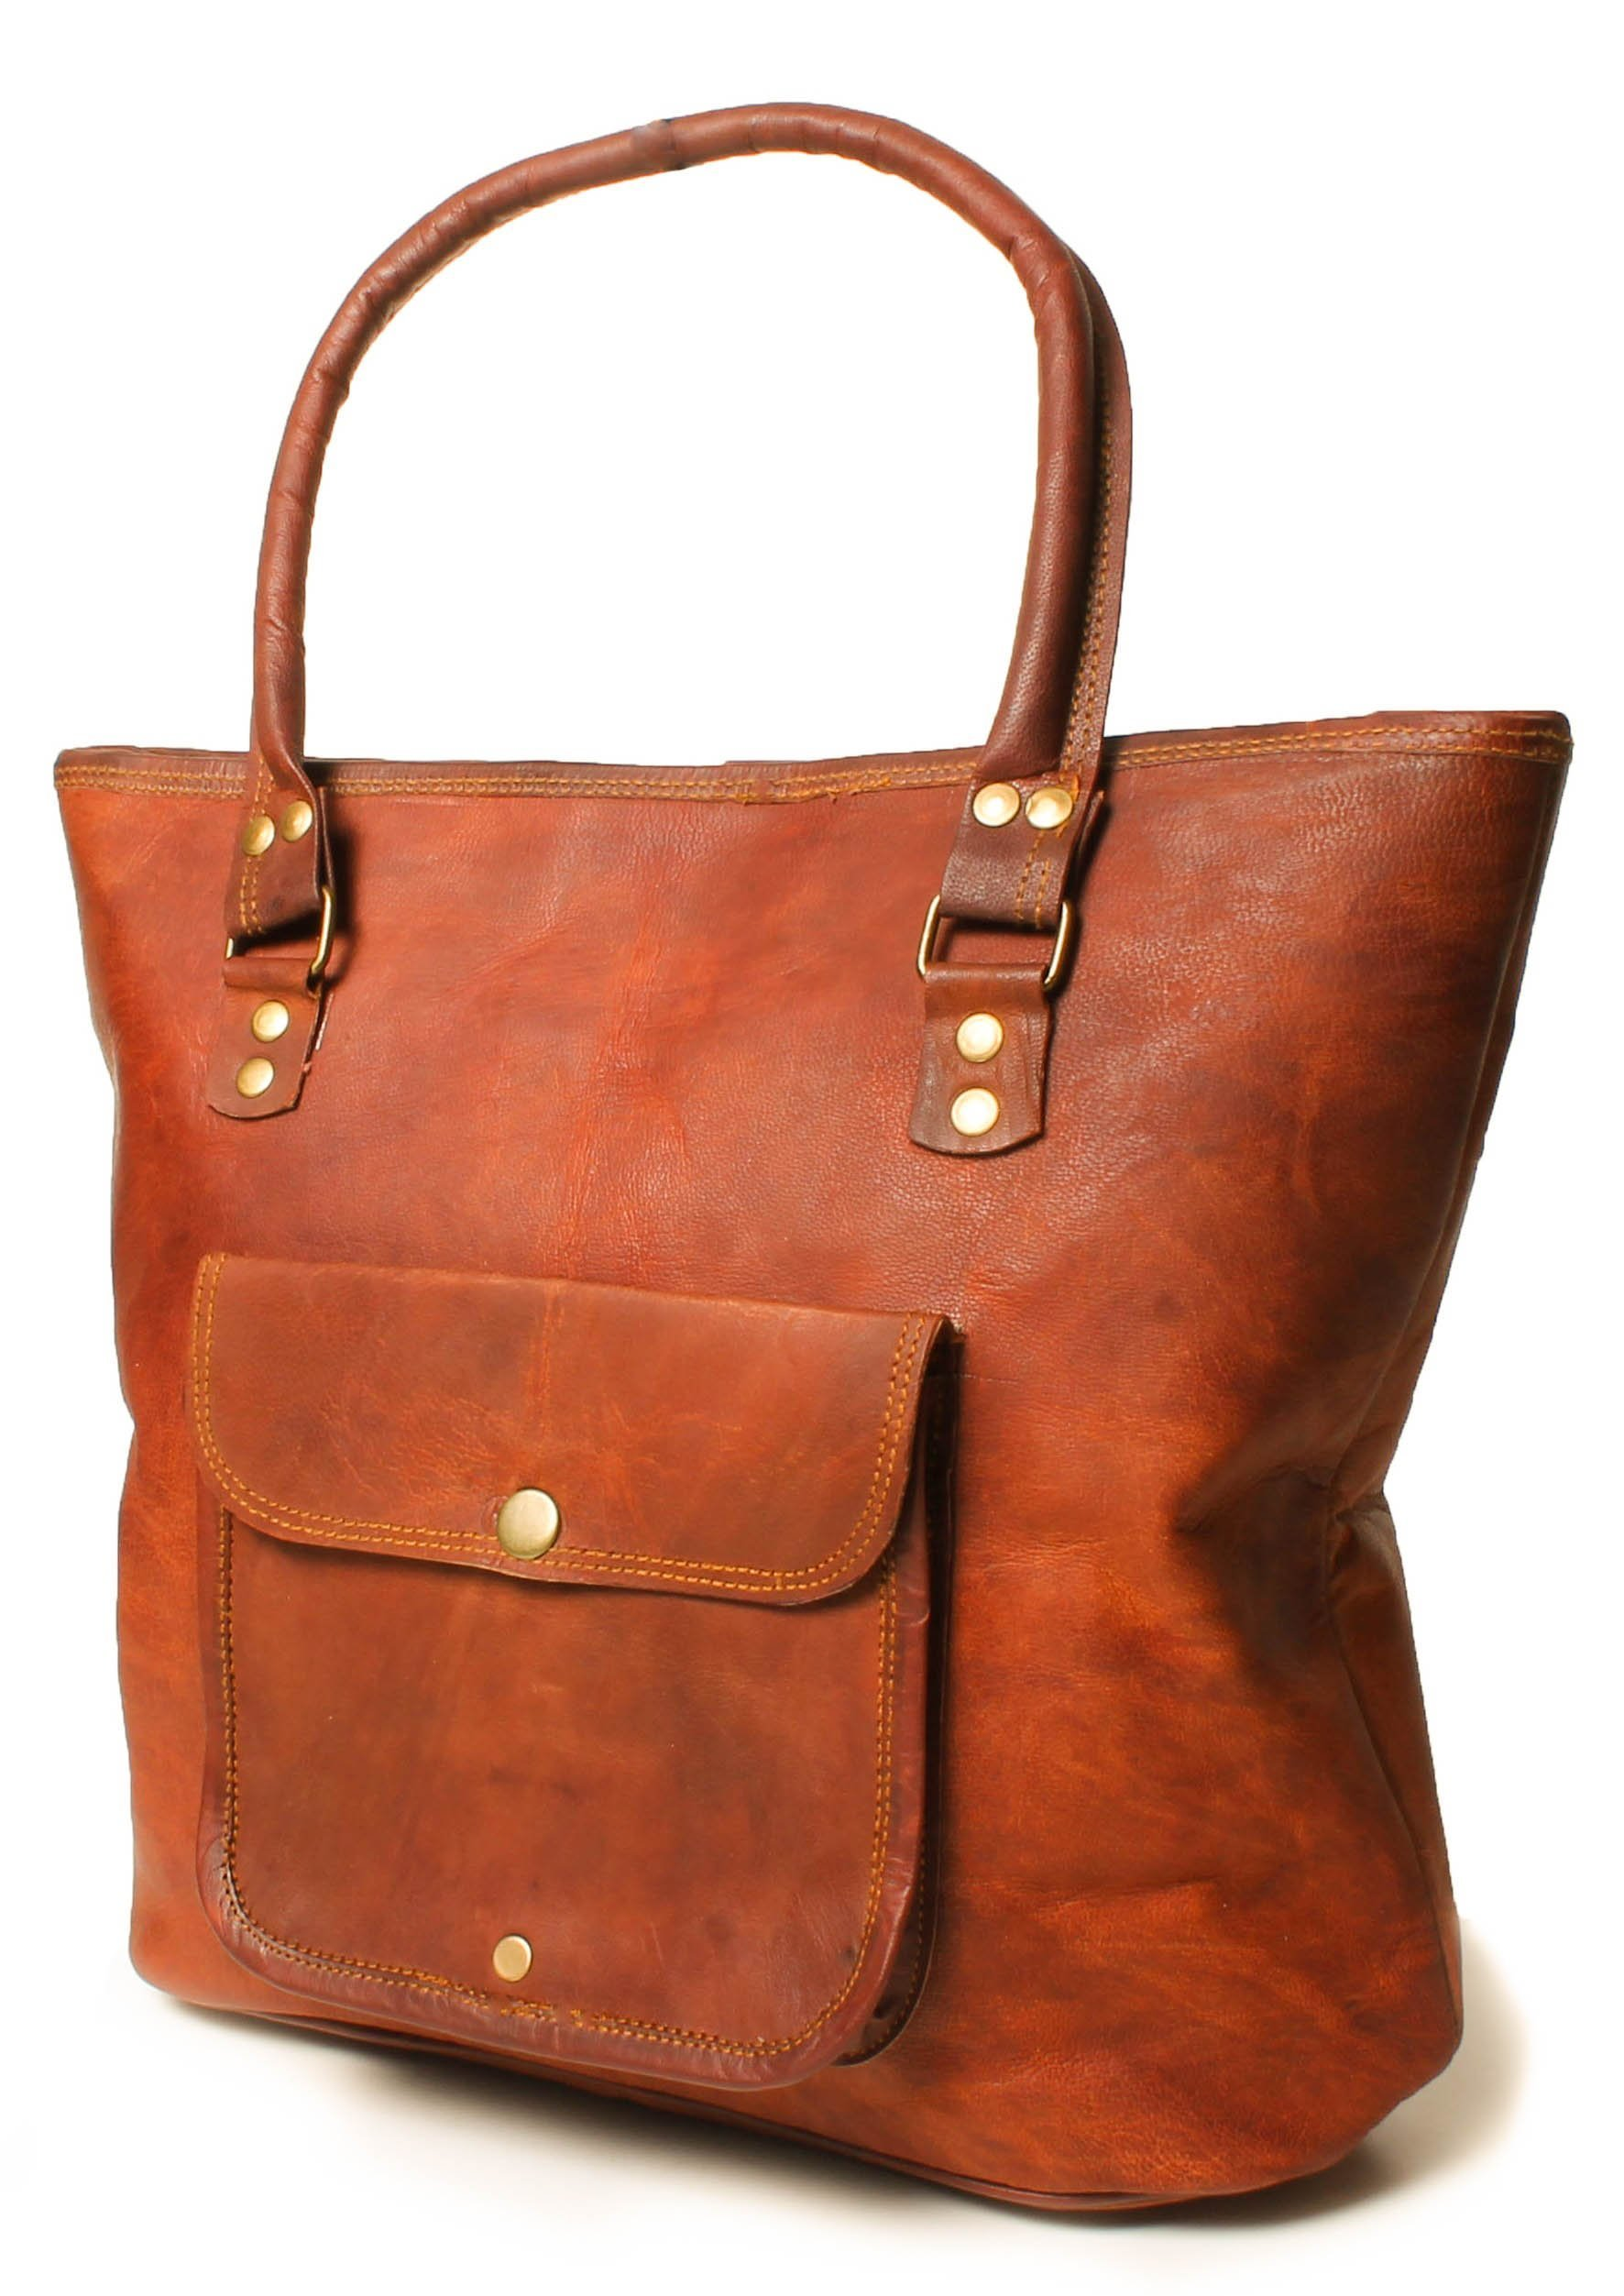 Artishus Womens Genuine Vintage Leather Handbag | 15 Inch Woman Bag | Style Satchel Tote Bag